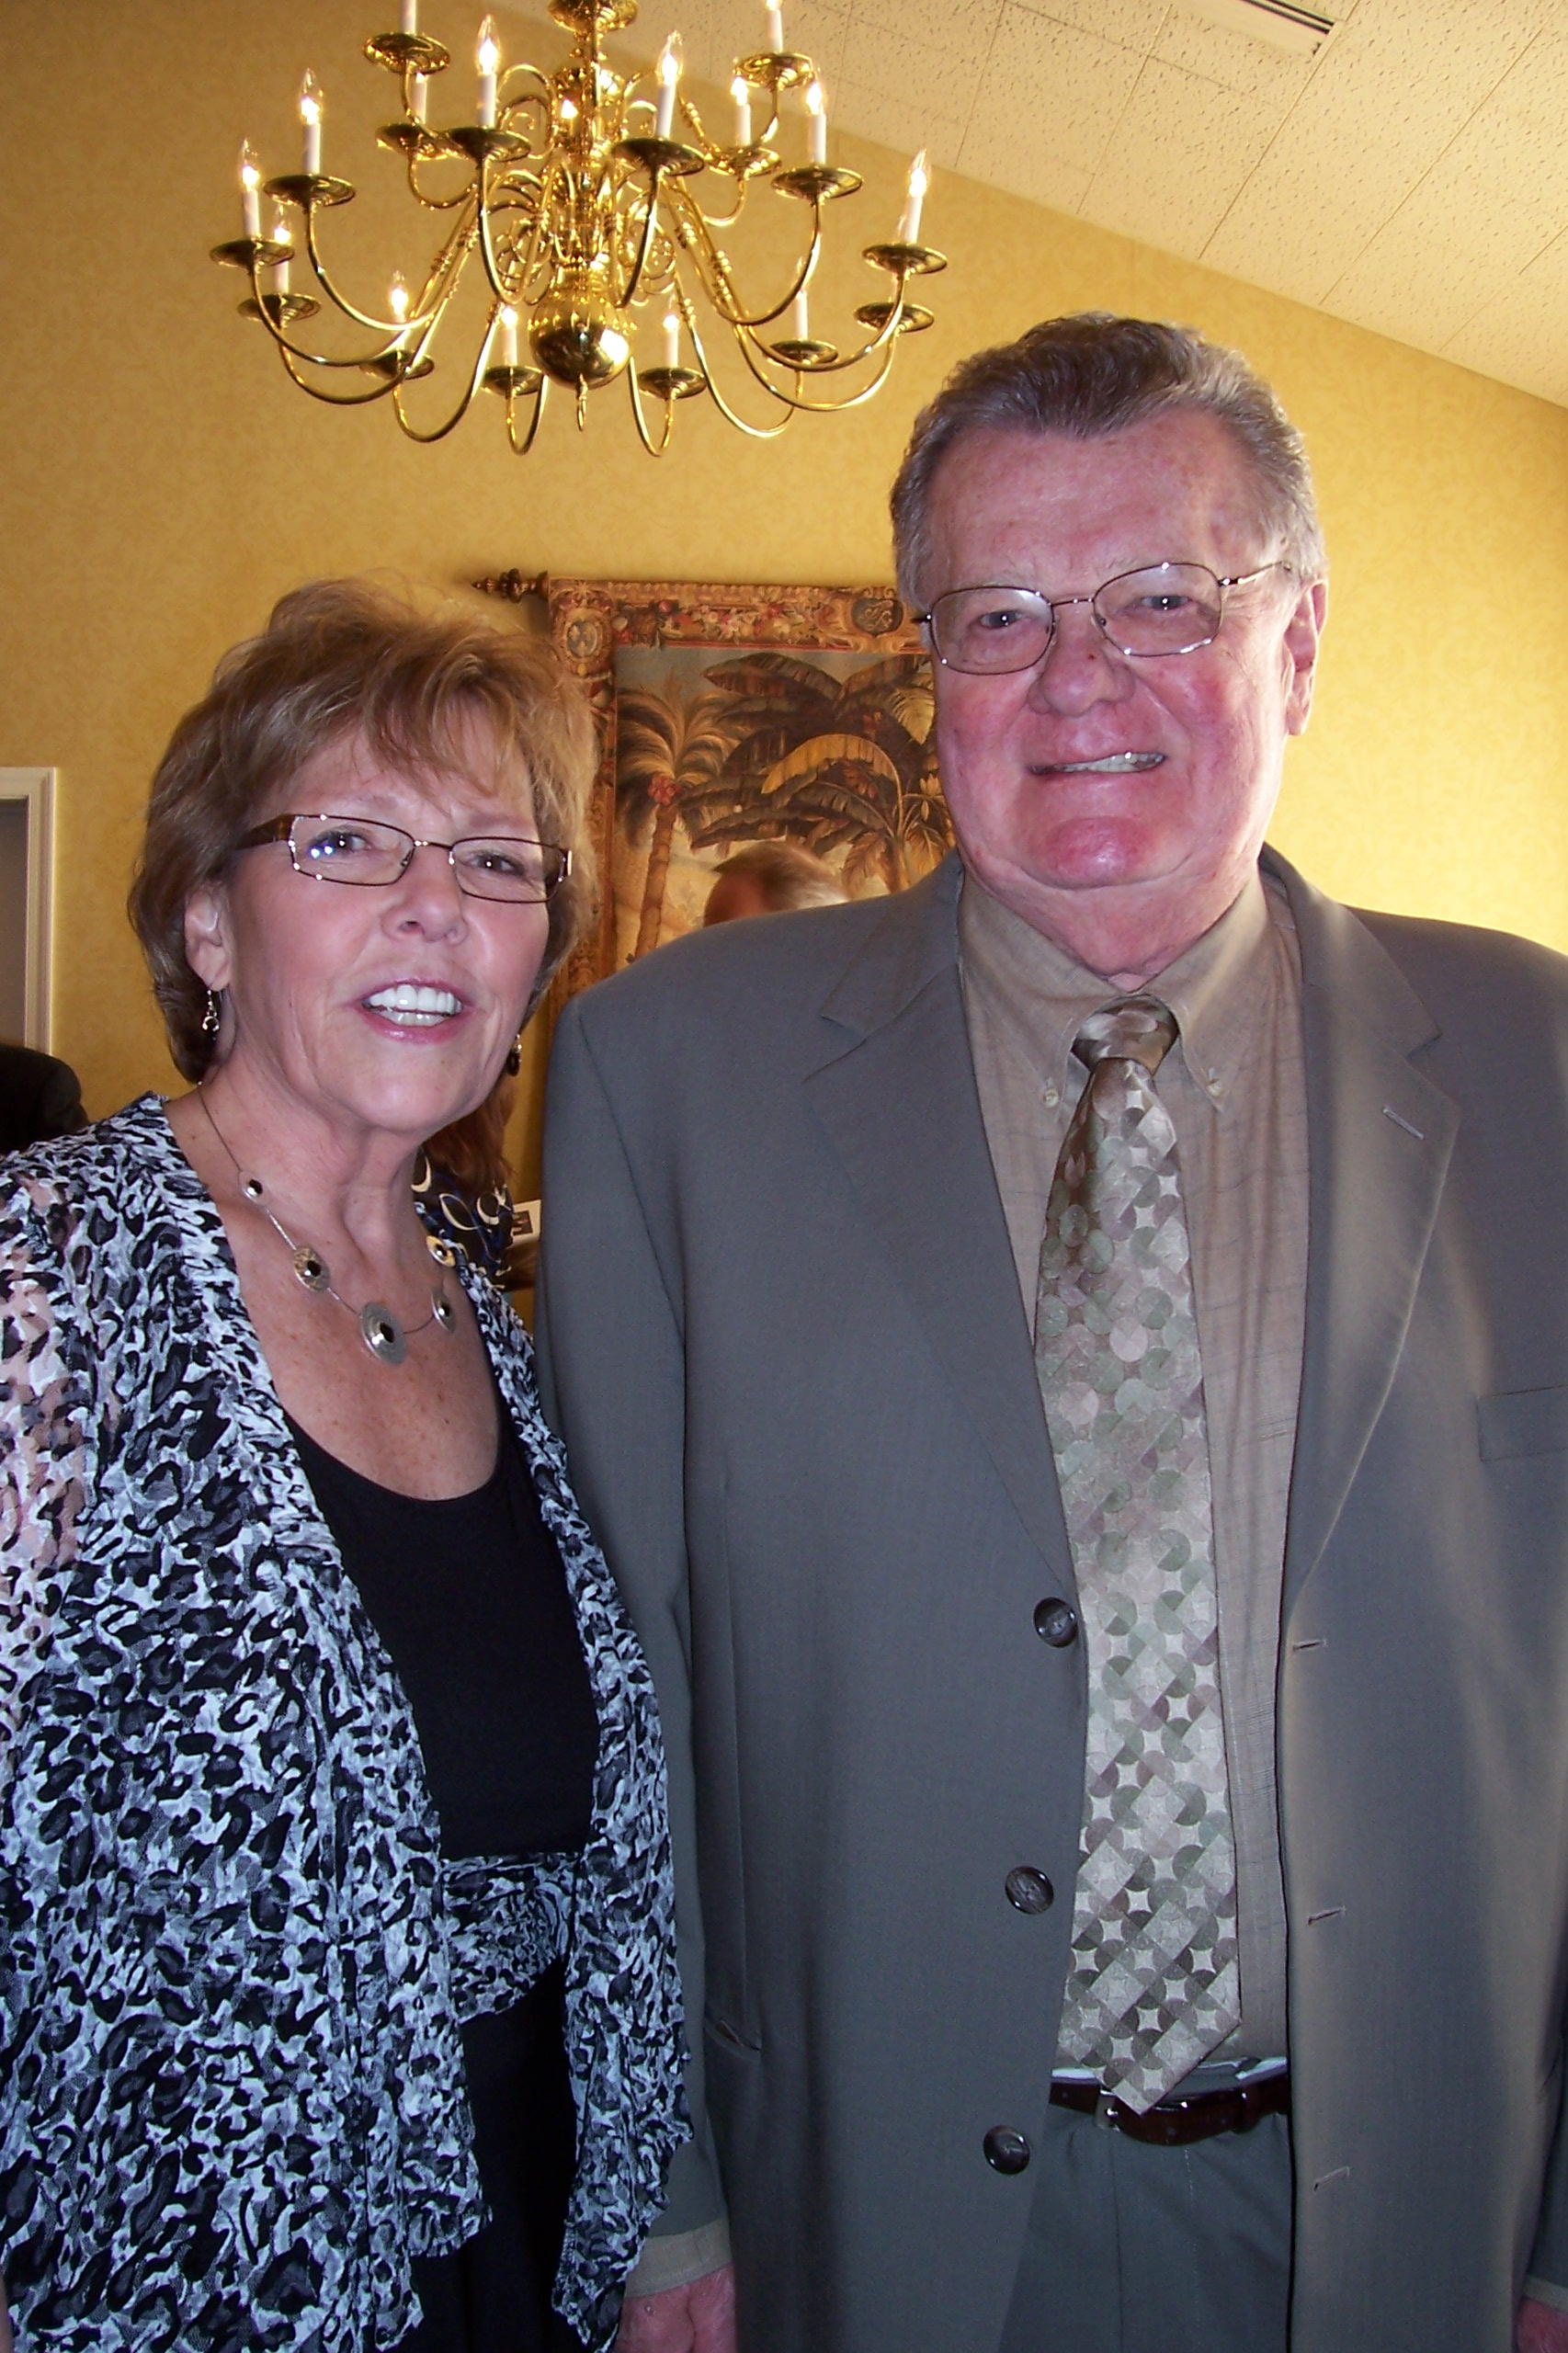 Vice President of Administration Ilene Davis pictured with Chuck Rushman,  Chairman and CEO.